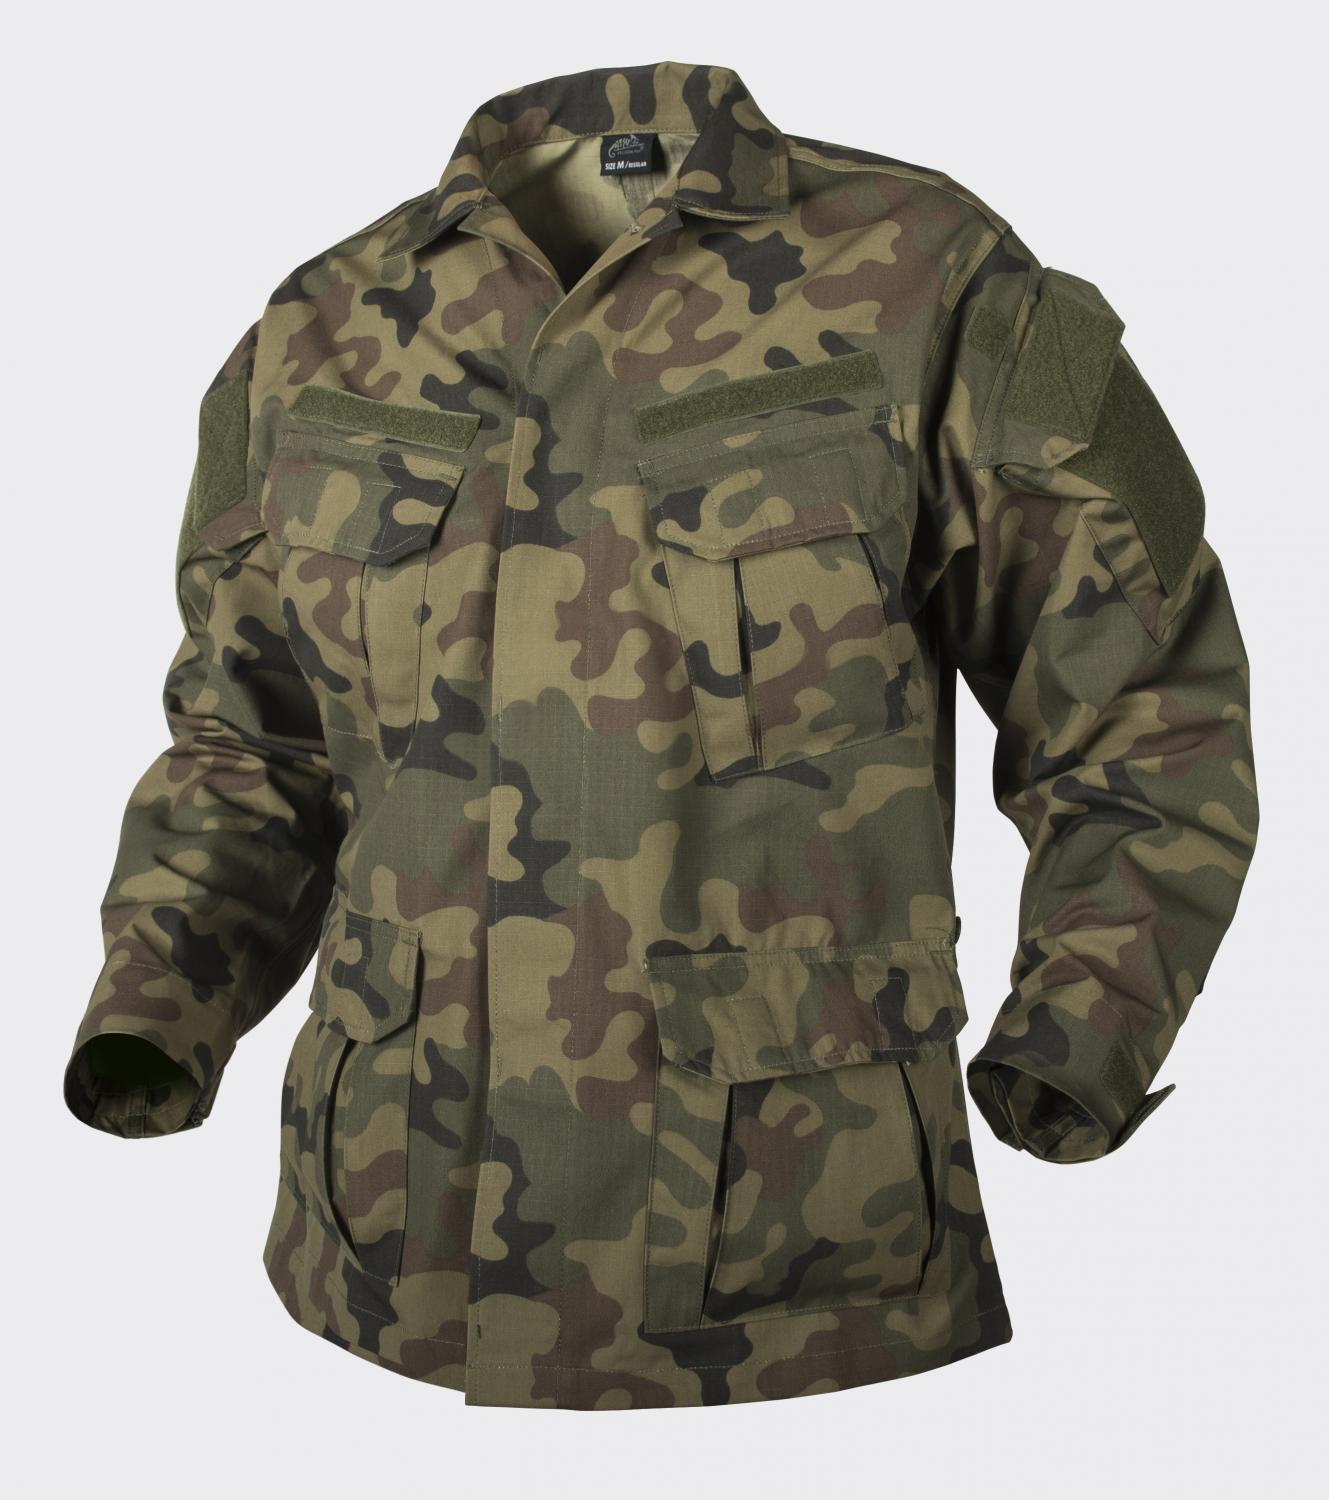 SFU (Special Forces Uniform) NEXT® - PolyCotton Ripstop PL Woodland